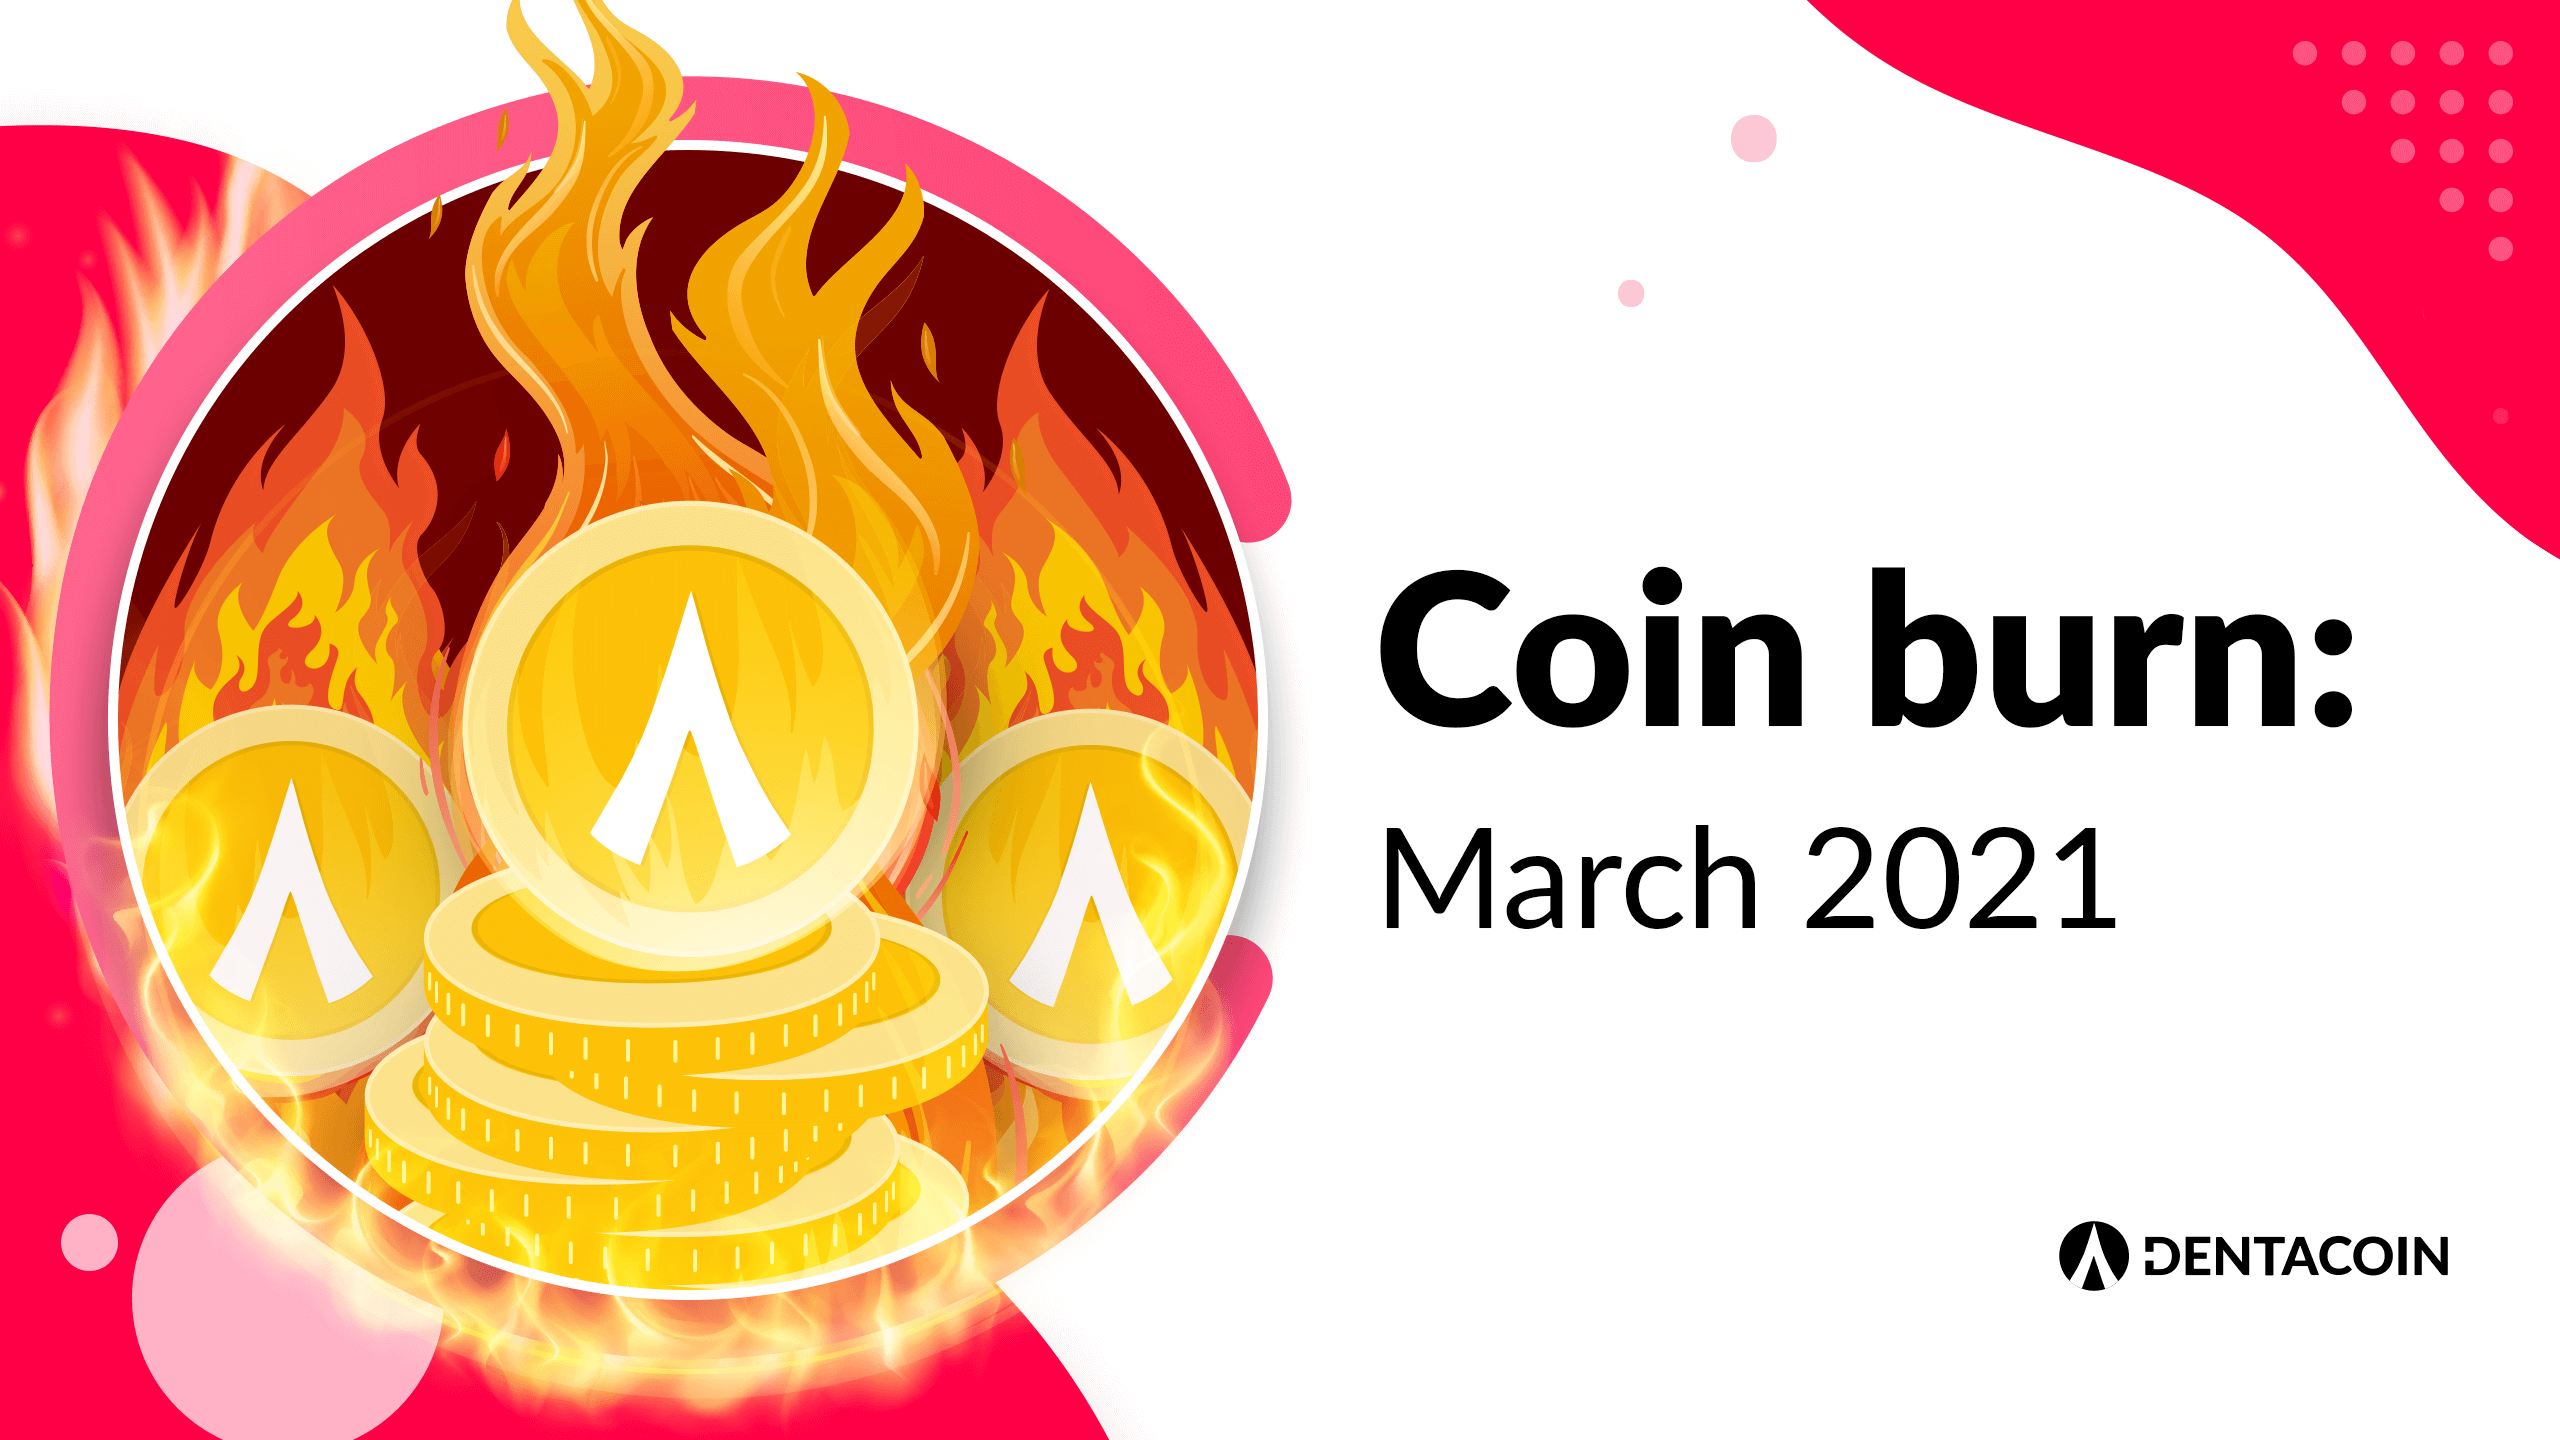 Coin burn december 2020 mail